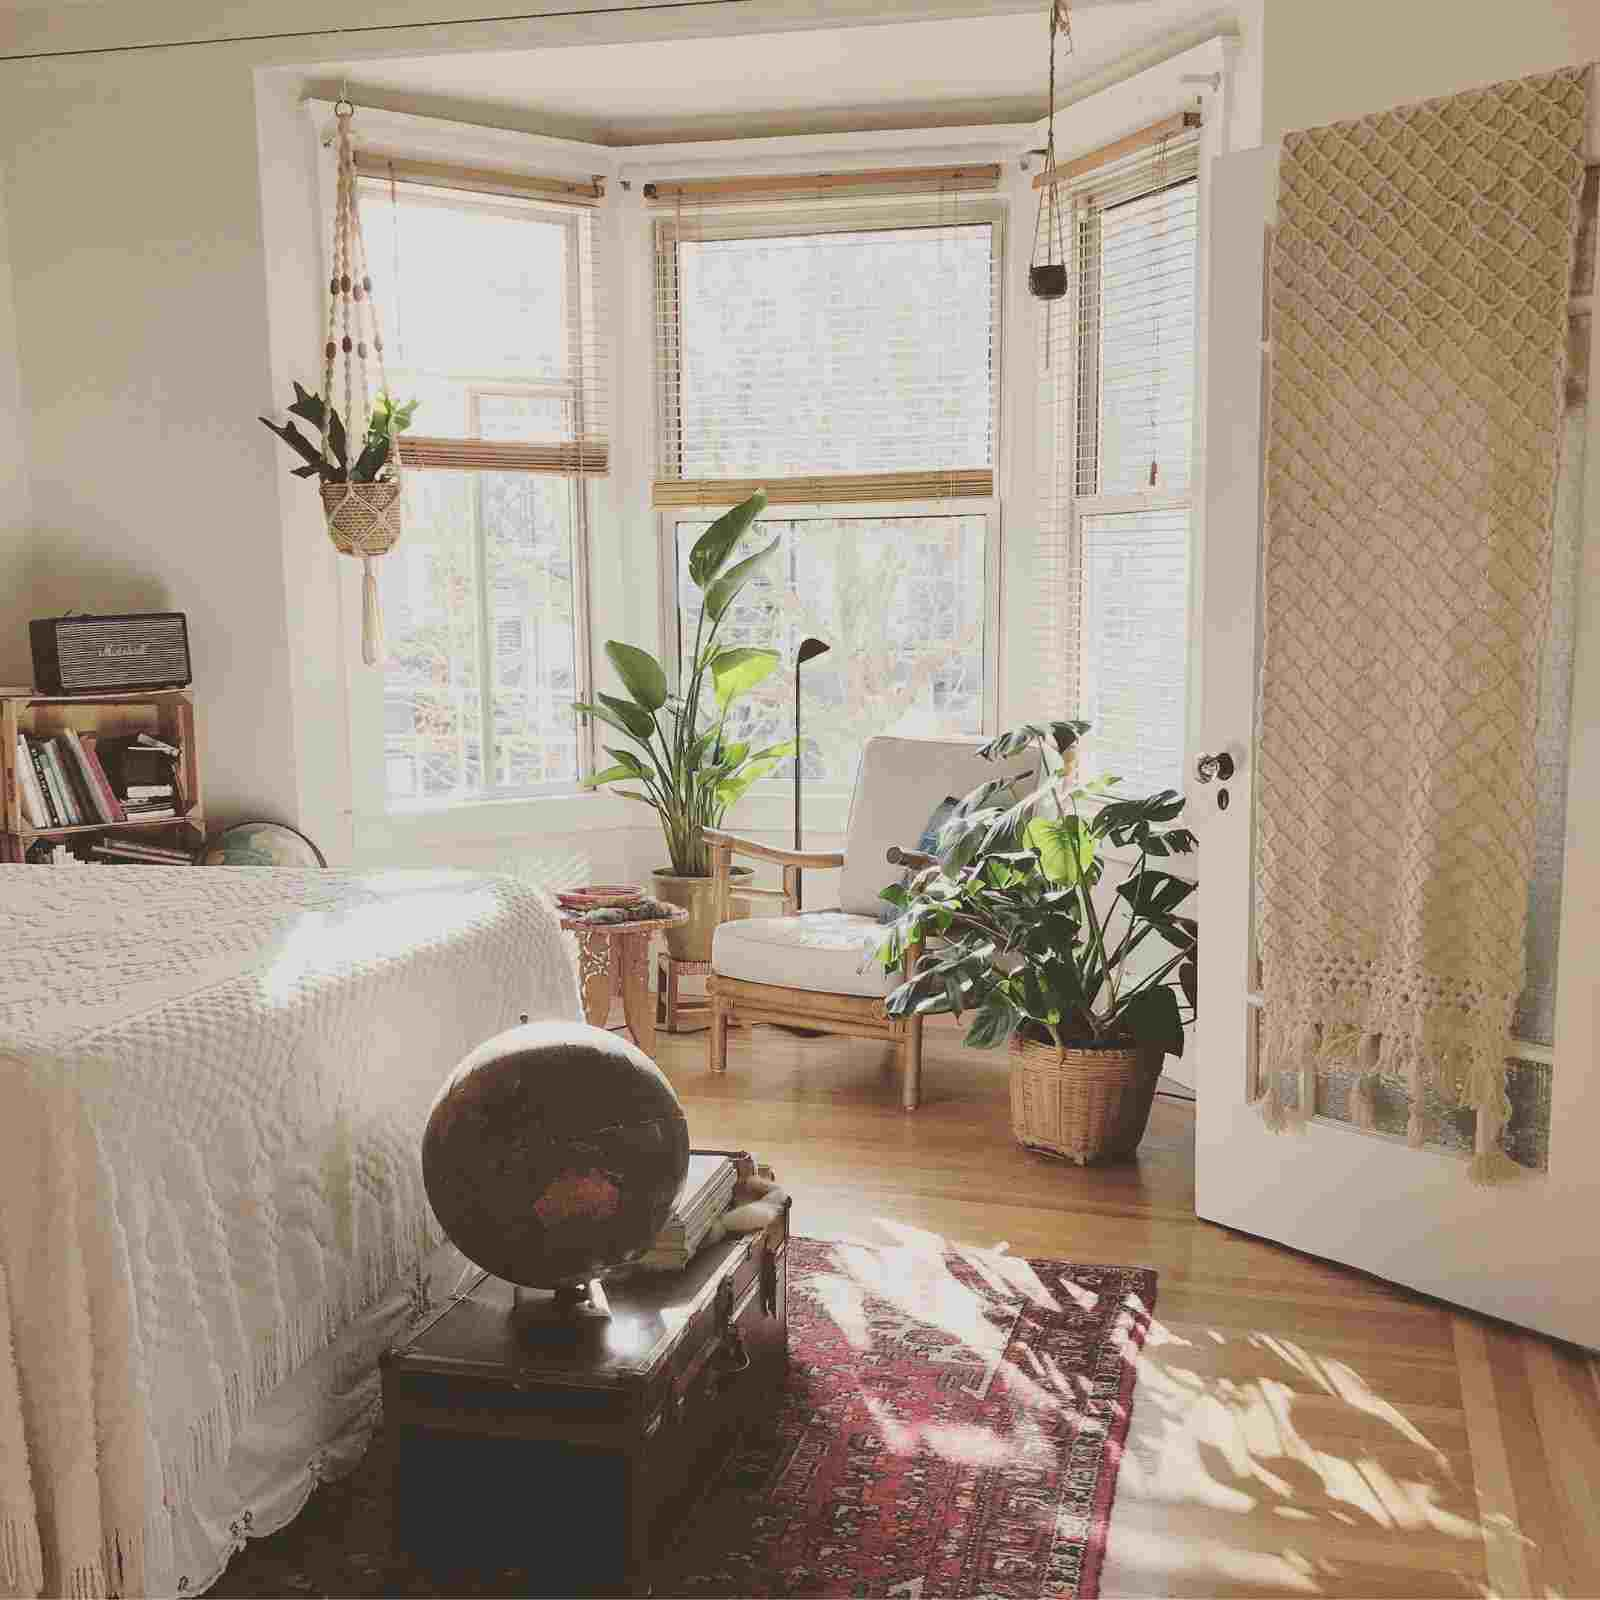 plants and tall windows in bedroom which is light and bright